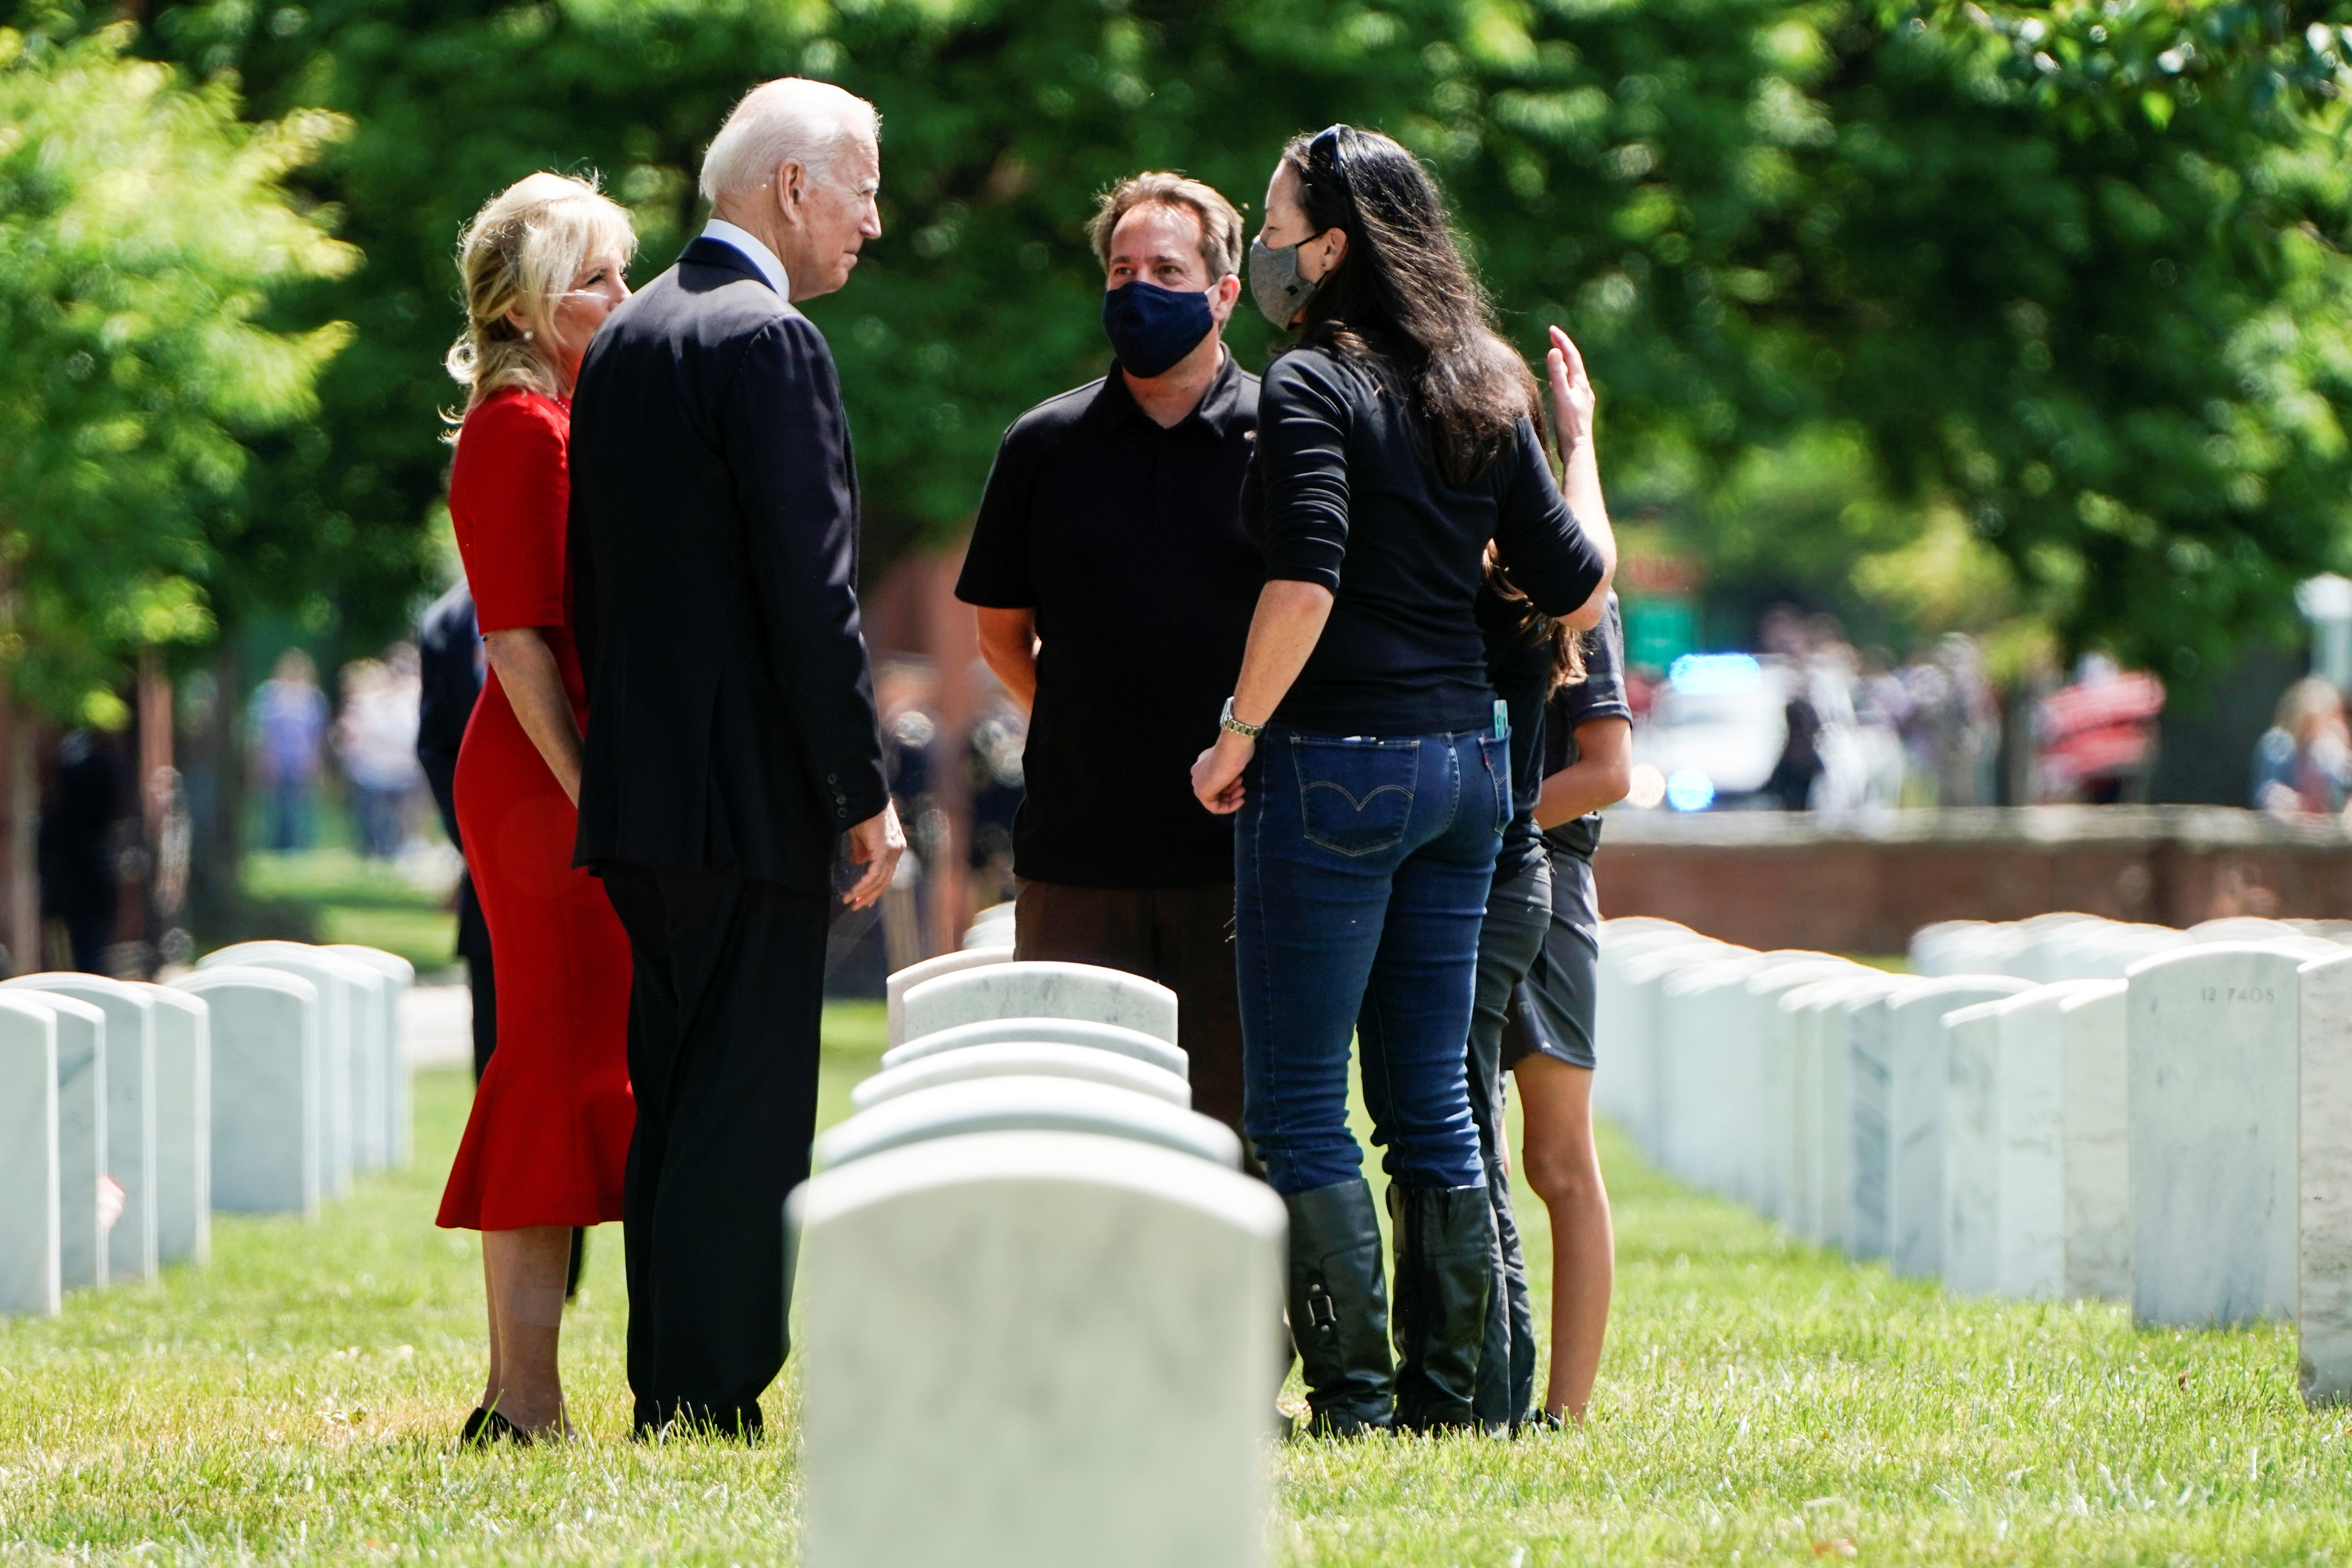 U.S. President Joe Biden and U.S. first lady Dr. Jill Biden greet one of the families on Memorial Day in Section 12 of Arlington National Cemetery in Virginia, U.S., May 31, 2021.      REUTERS/Joshua Roberts